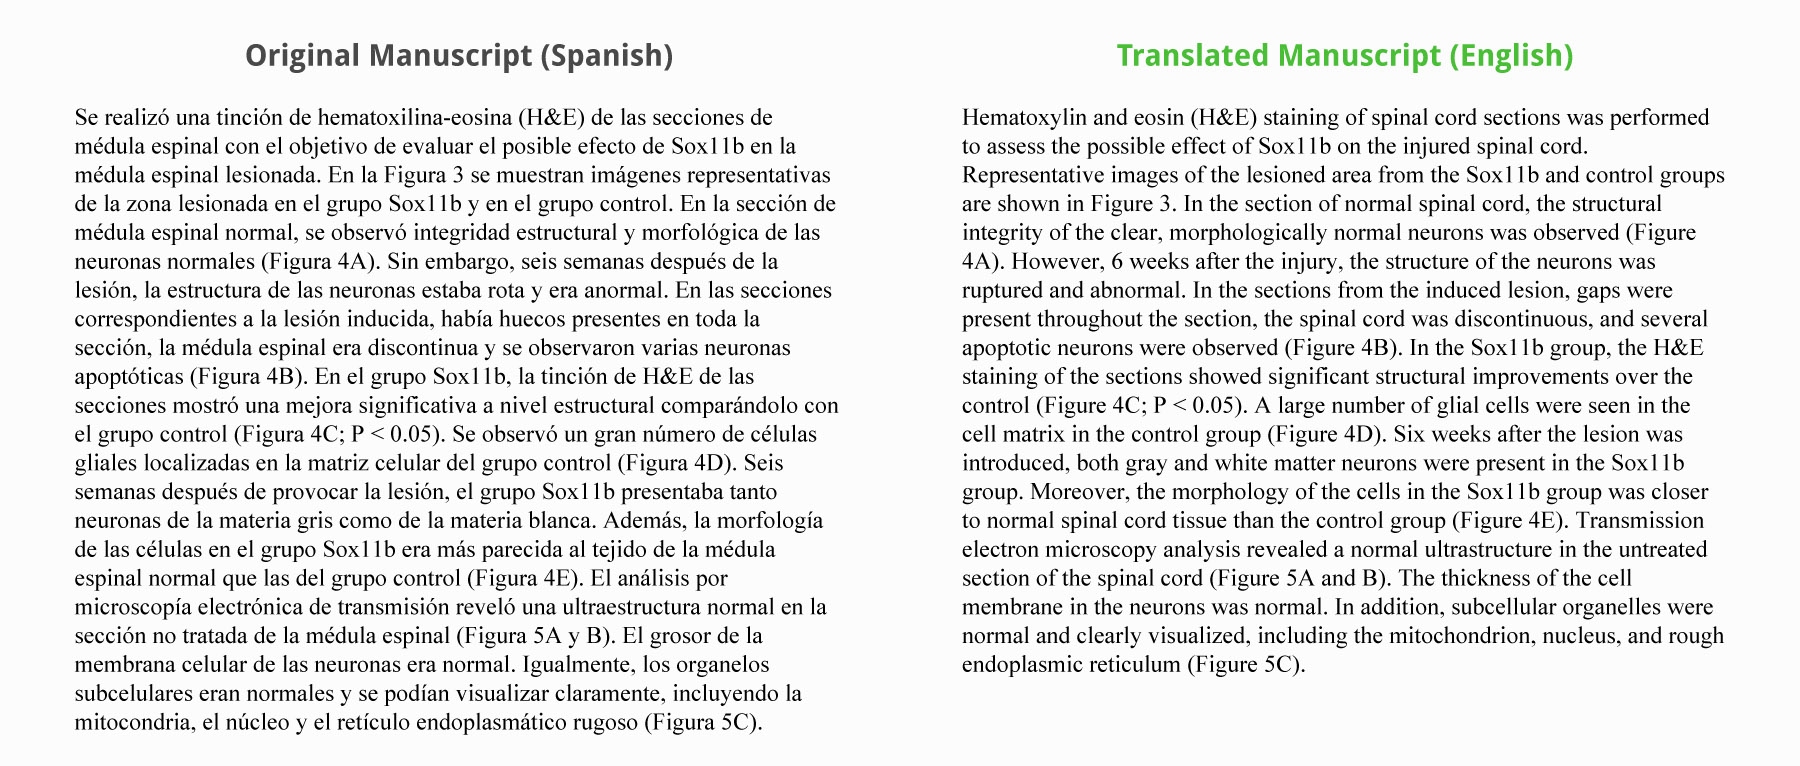 015 Translate Essay To Spanish Example Work Sample Staggering My Into What Does Mean In Full